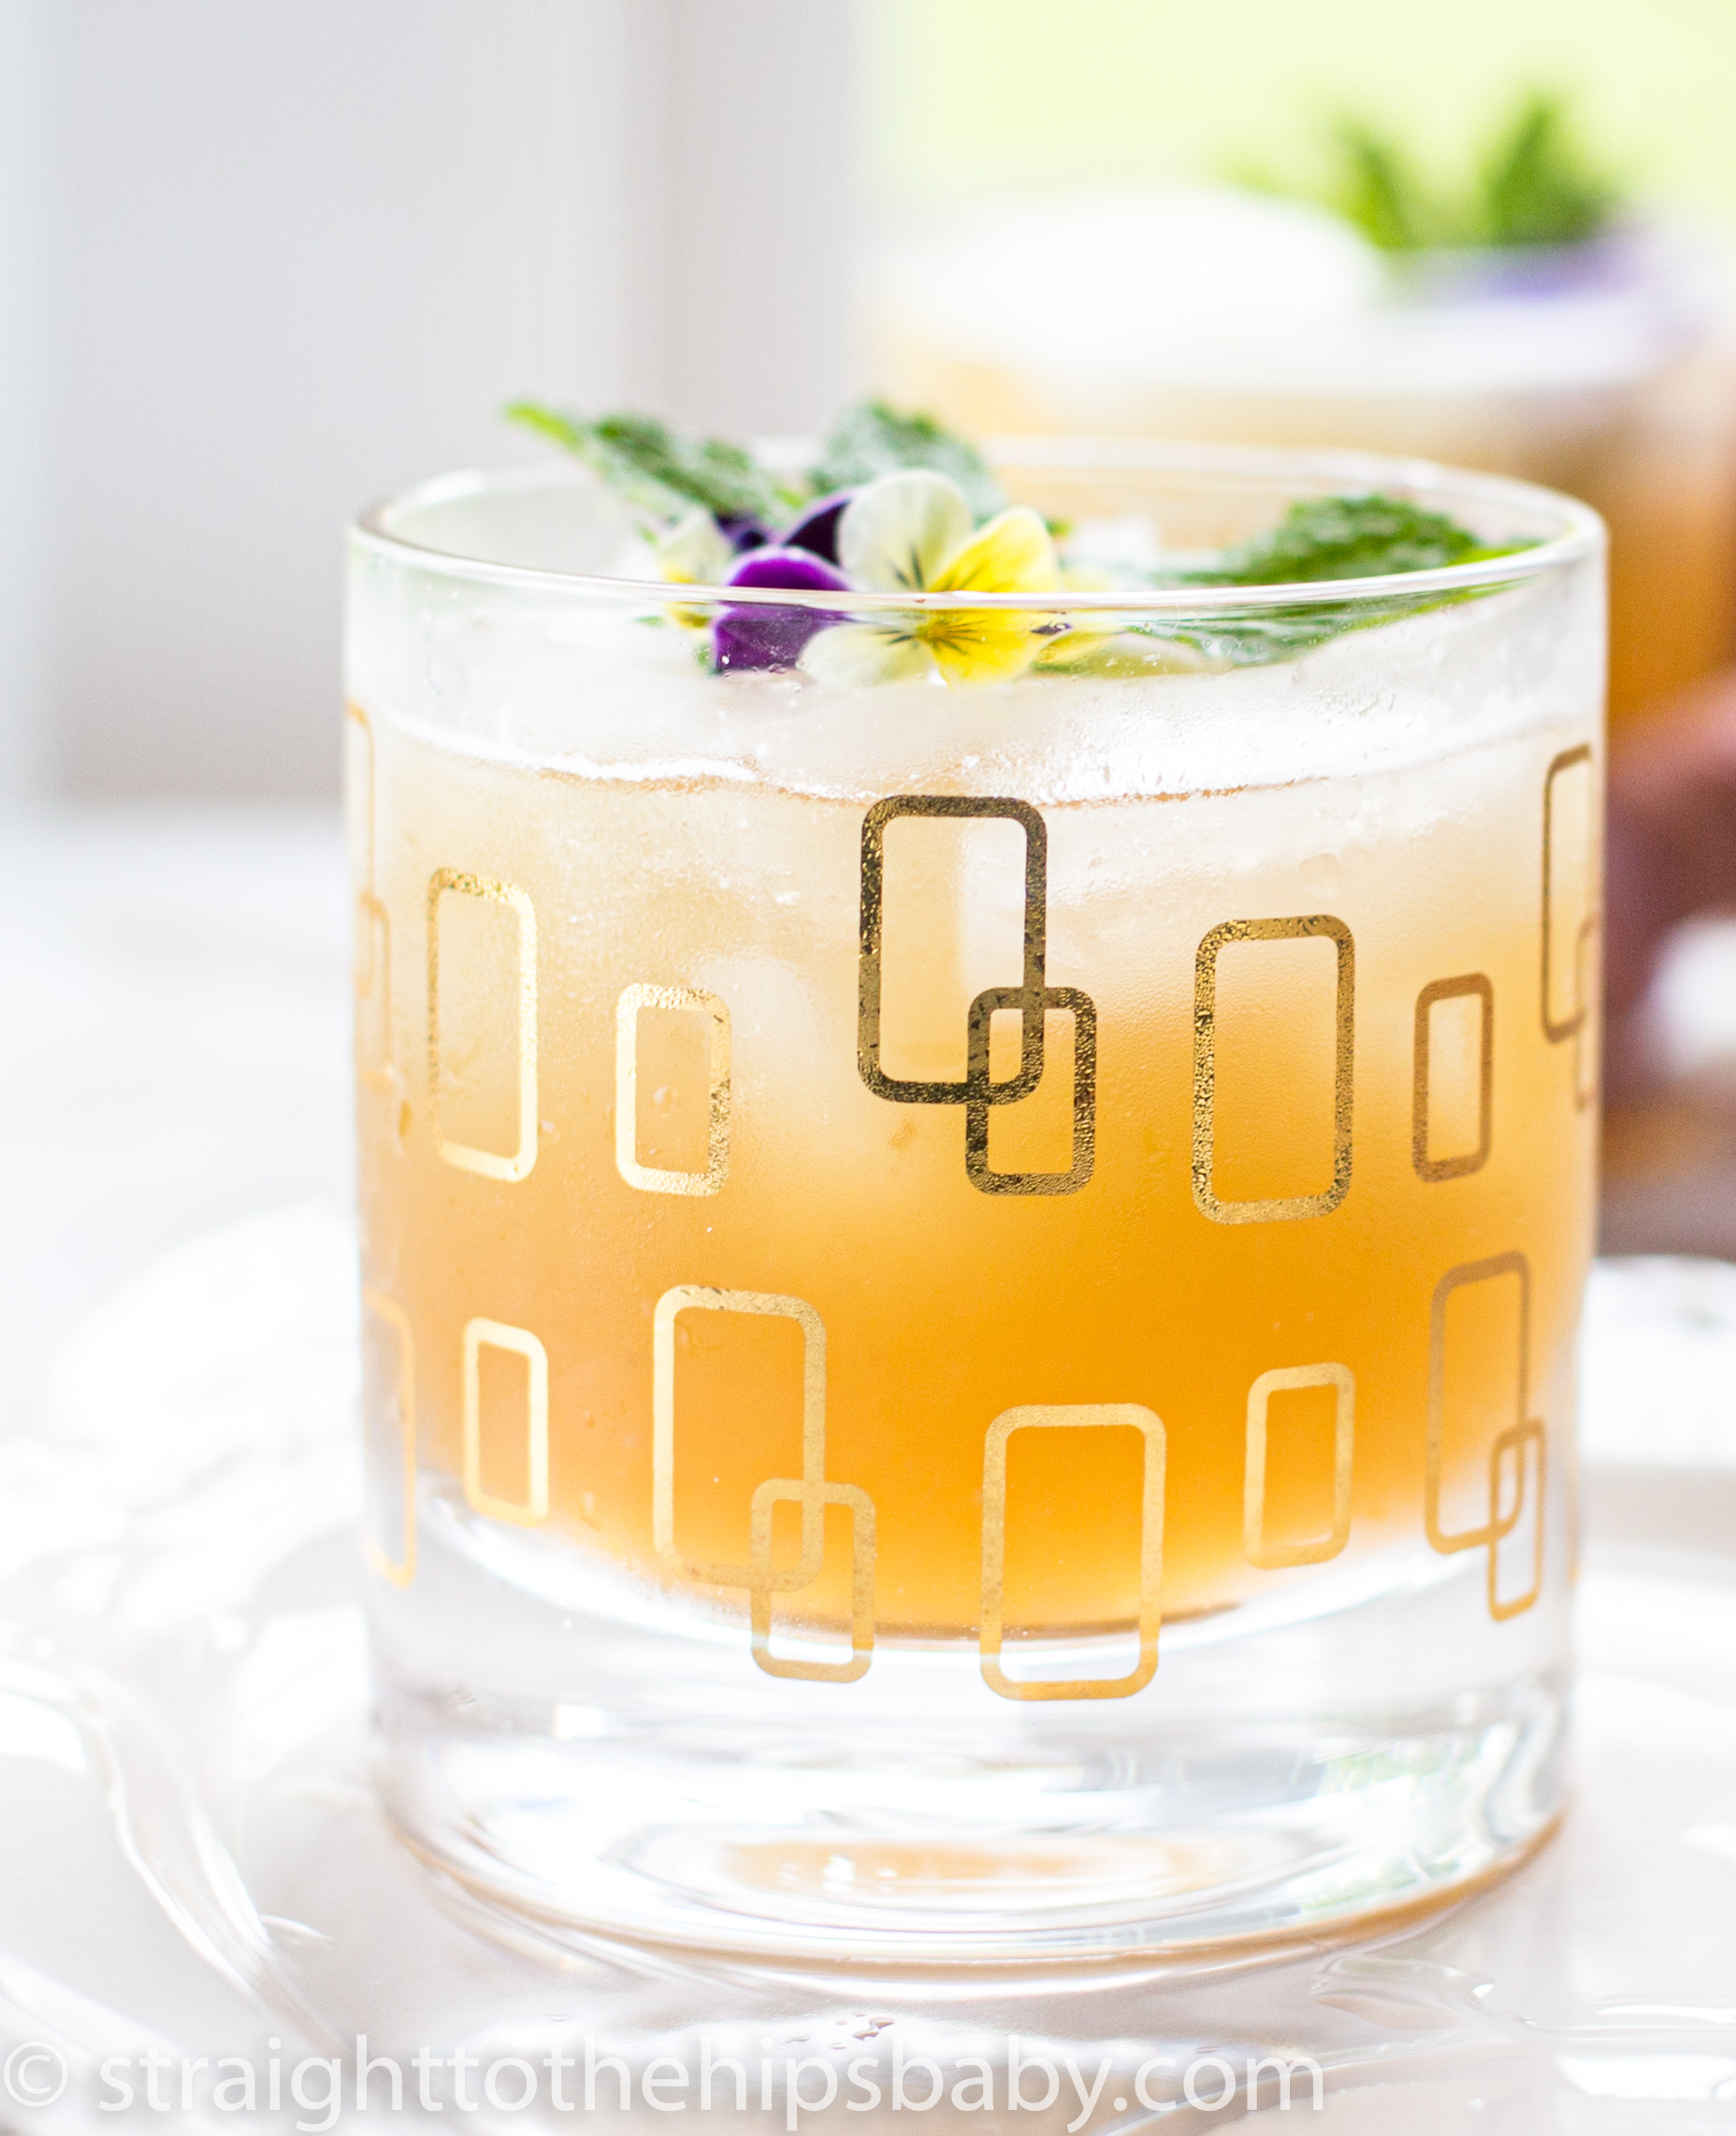 a chilled cocktail glass filled with whisky lemonade and garnished with flowers and mint